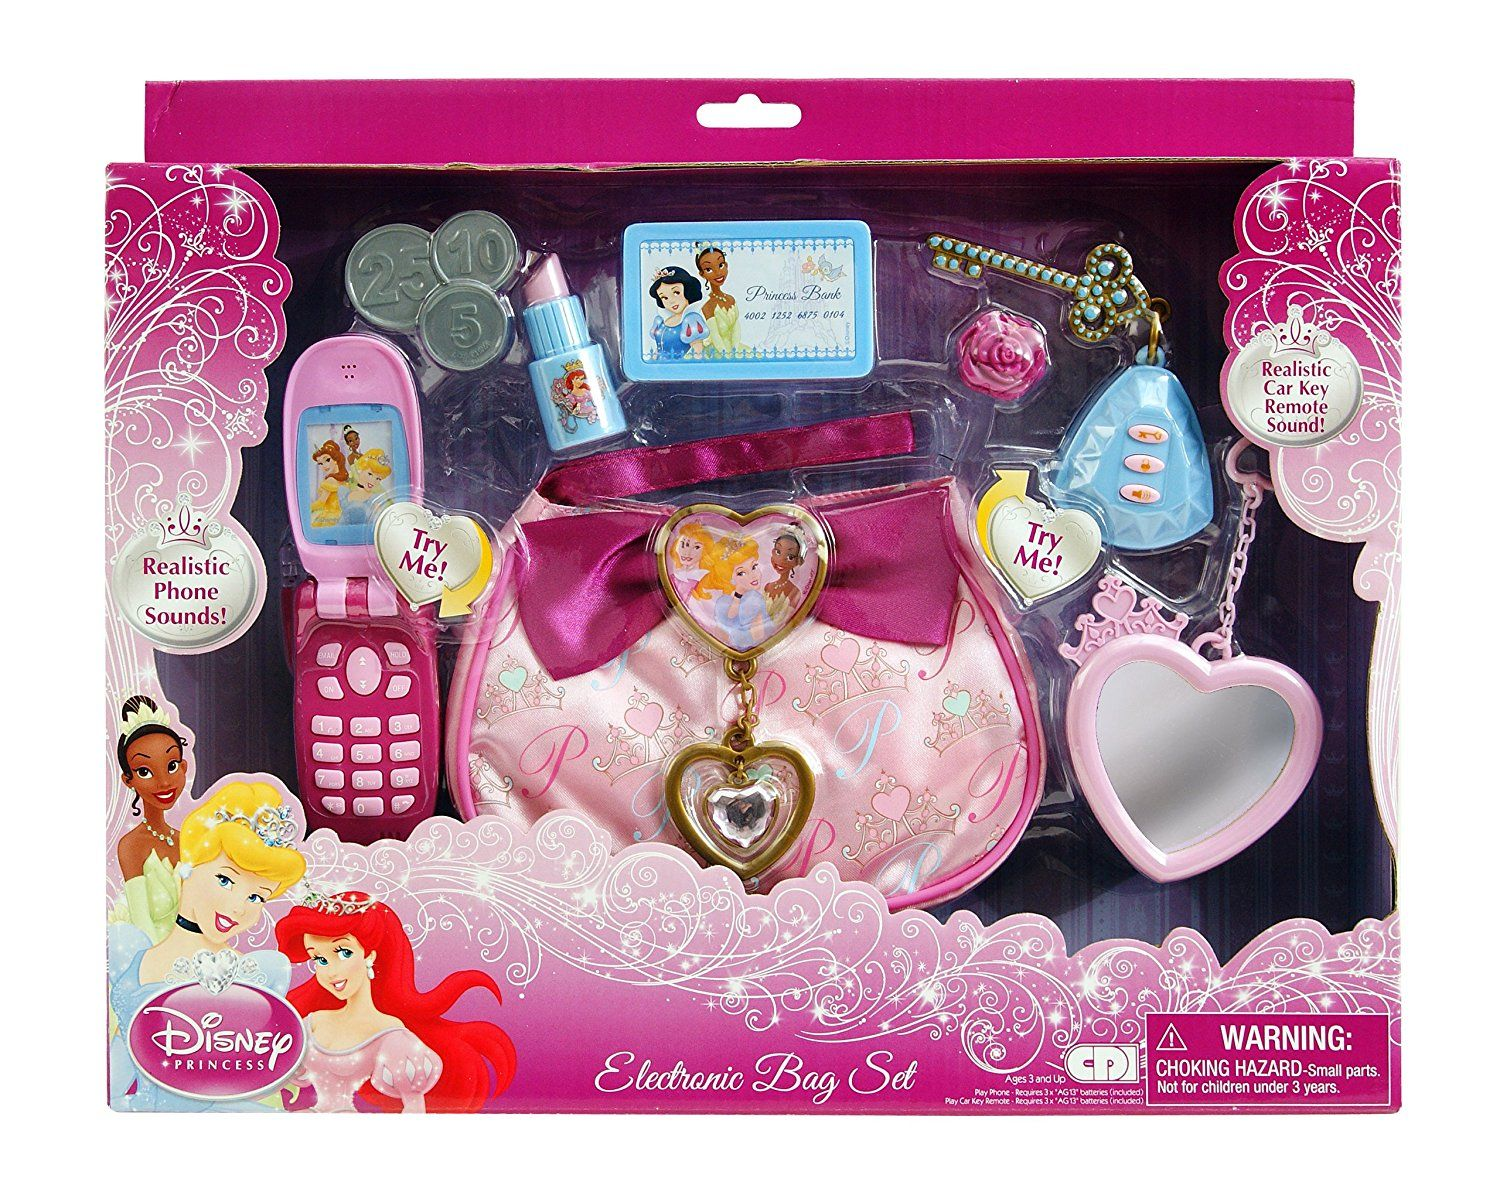 Disney princess coloring vanity case - Disney Princess Electronic Bag Set By Disney Princess